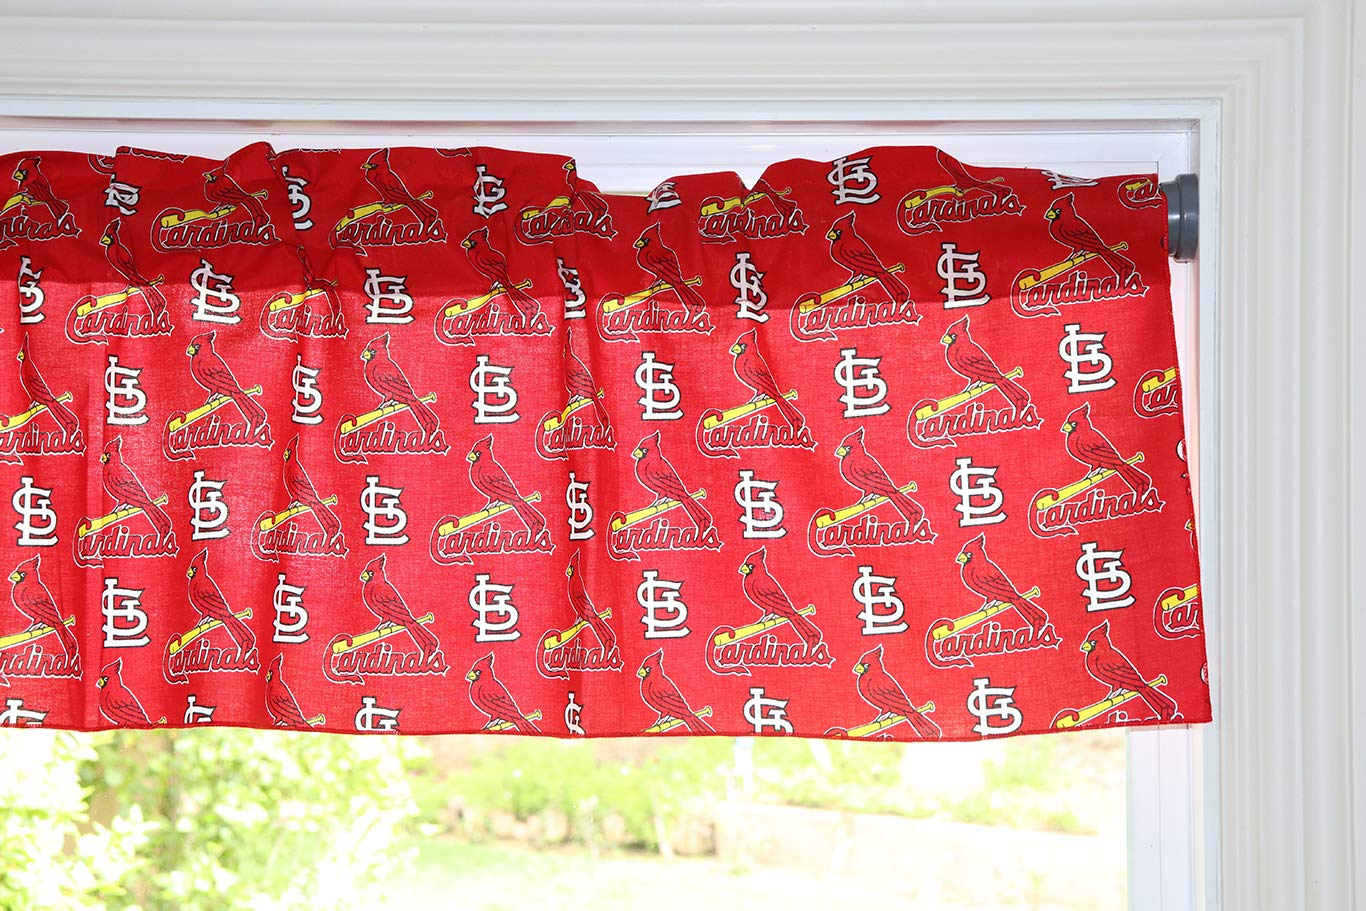 lovemyfabric Baseball Cotton Window Valance 100% Cotton Print MLB Sports Team St. Louis Cardinals Events Kitchen Dining Room Bedroom Window Decor (58'' Wide) (32'' Tall, Red) by lovemyfabric